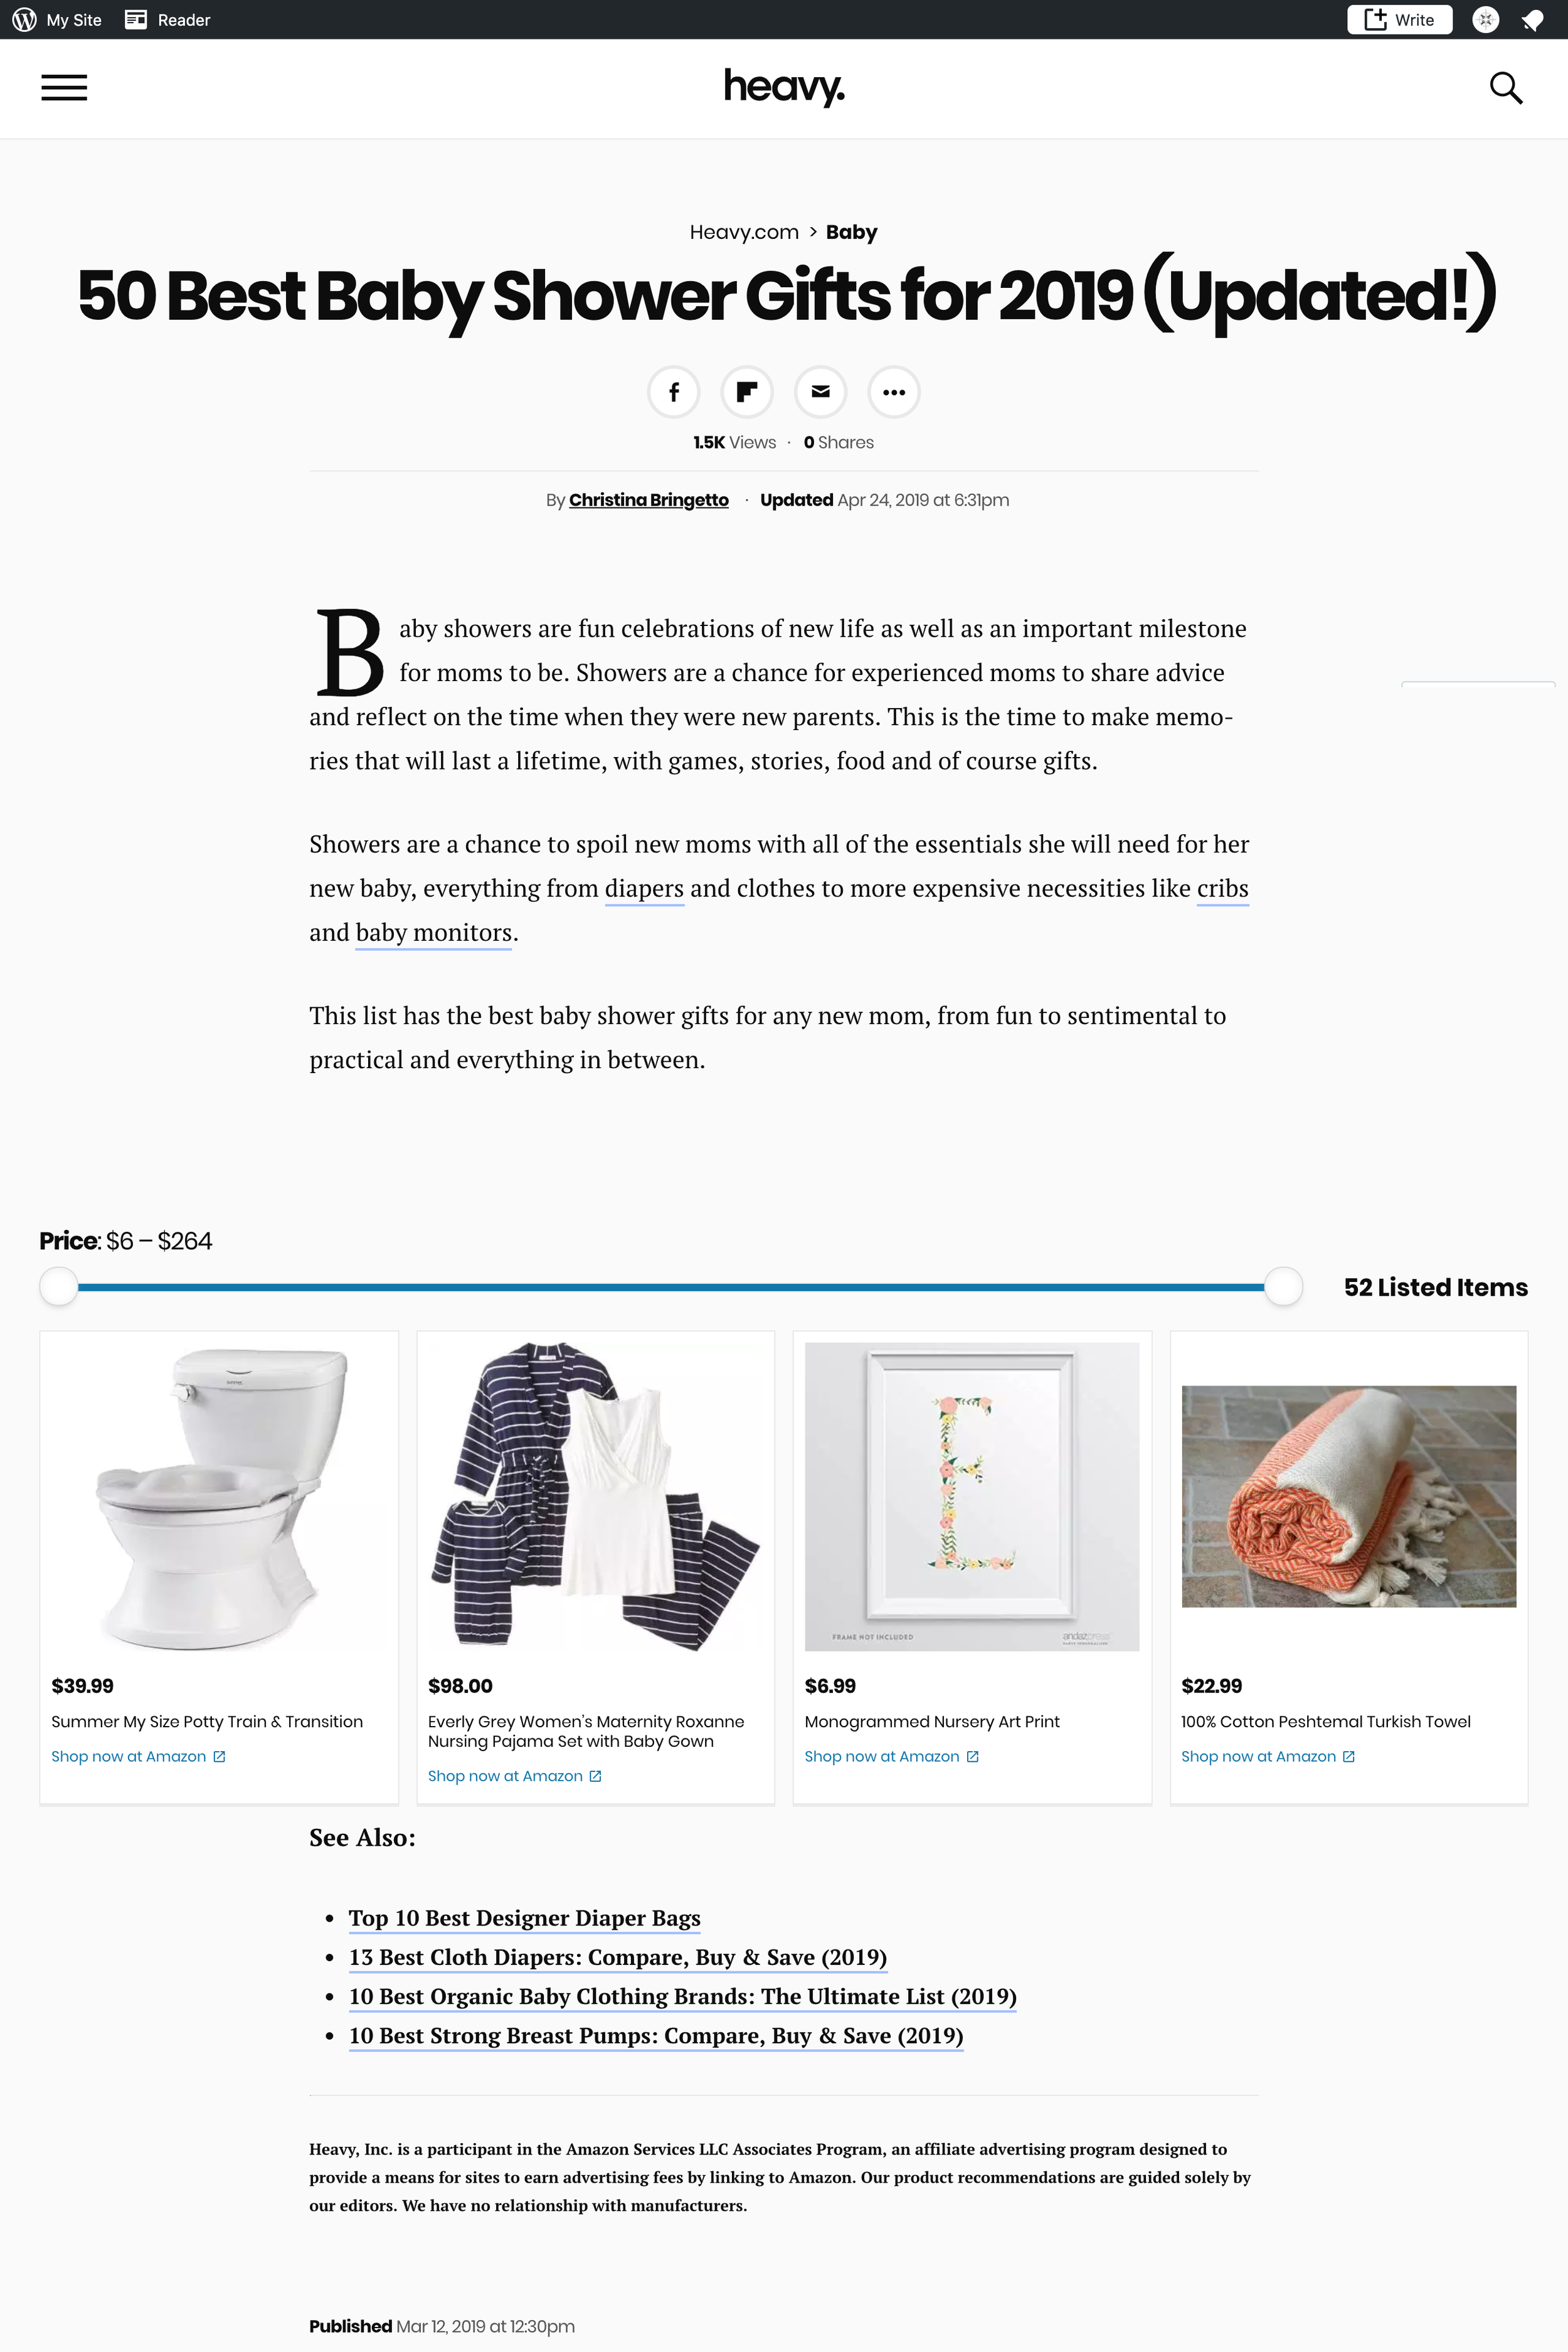 2019.05.00_Heavy_Summer My Size Potty Train & Transition_Roundup 2 of 5_cropped 2x3.png